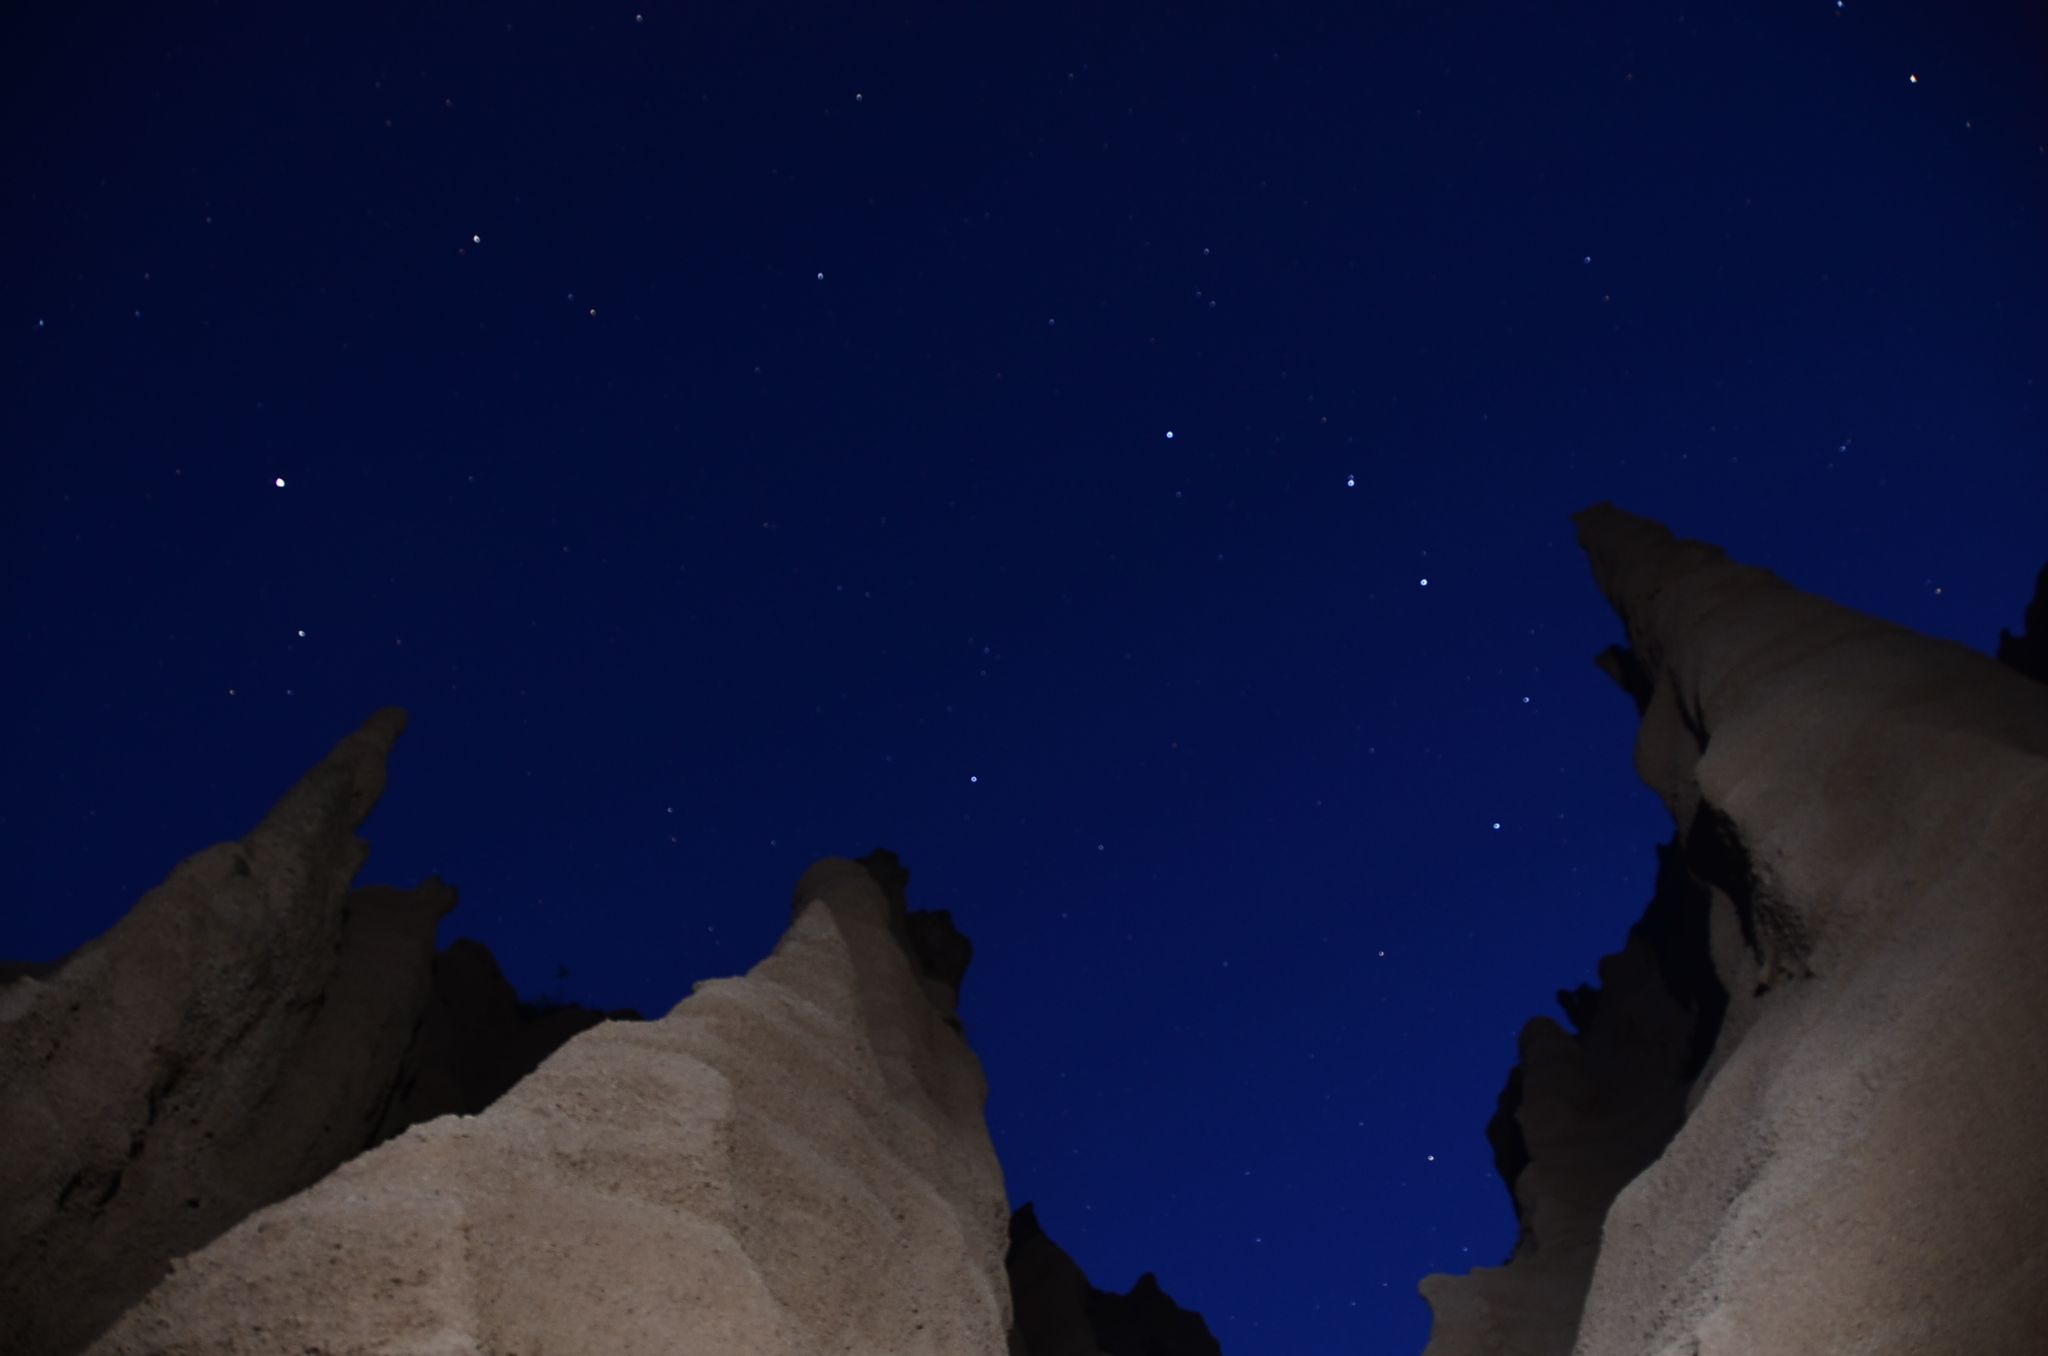 Under a ceiling of stars in the sky by Tito Picotti